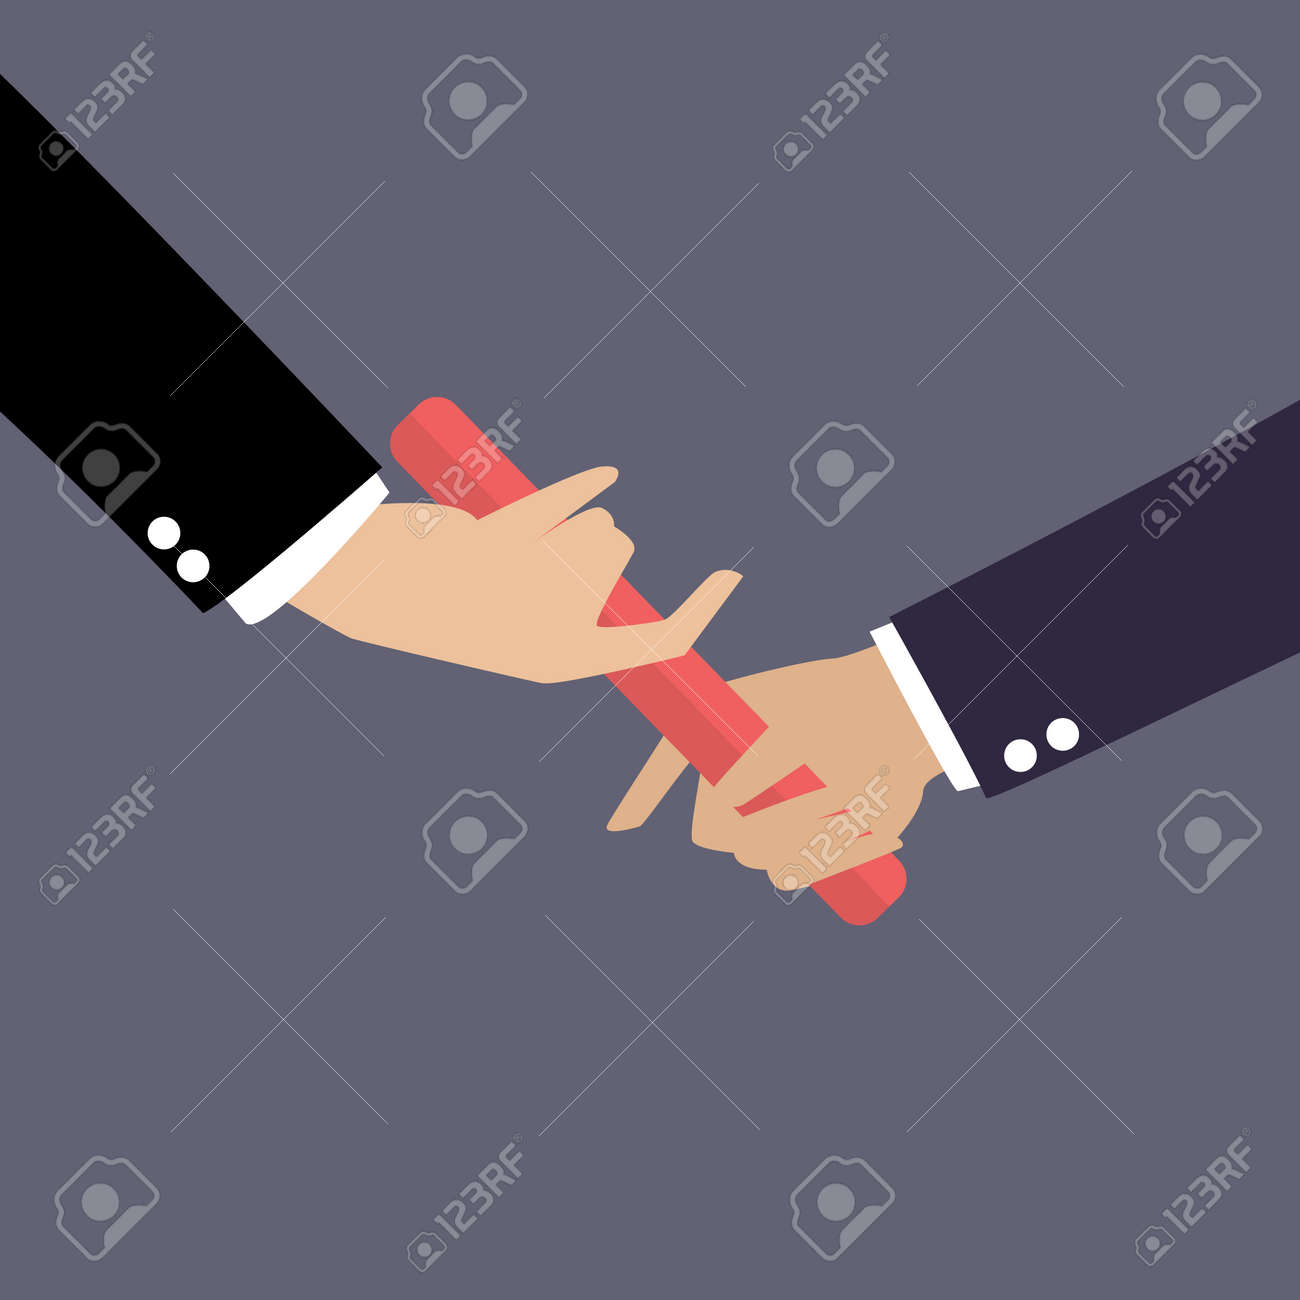 Businessman hand passing the baton in a relay race. Partnership or teamwork concept - 44328917